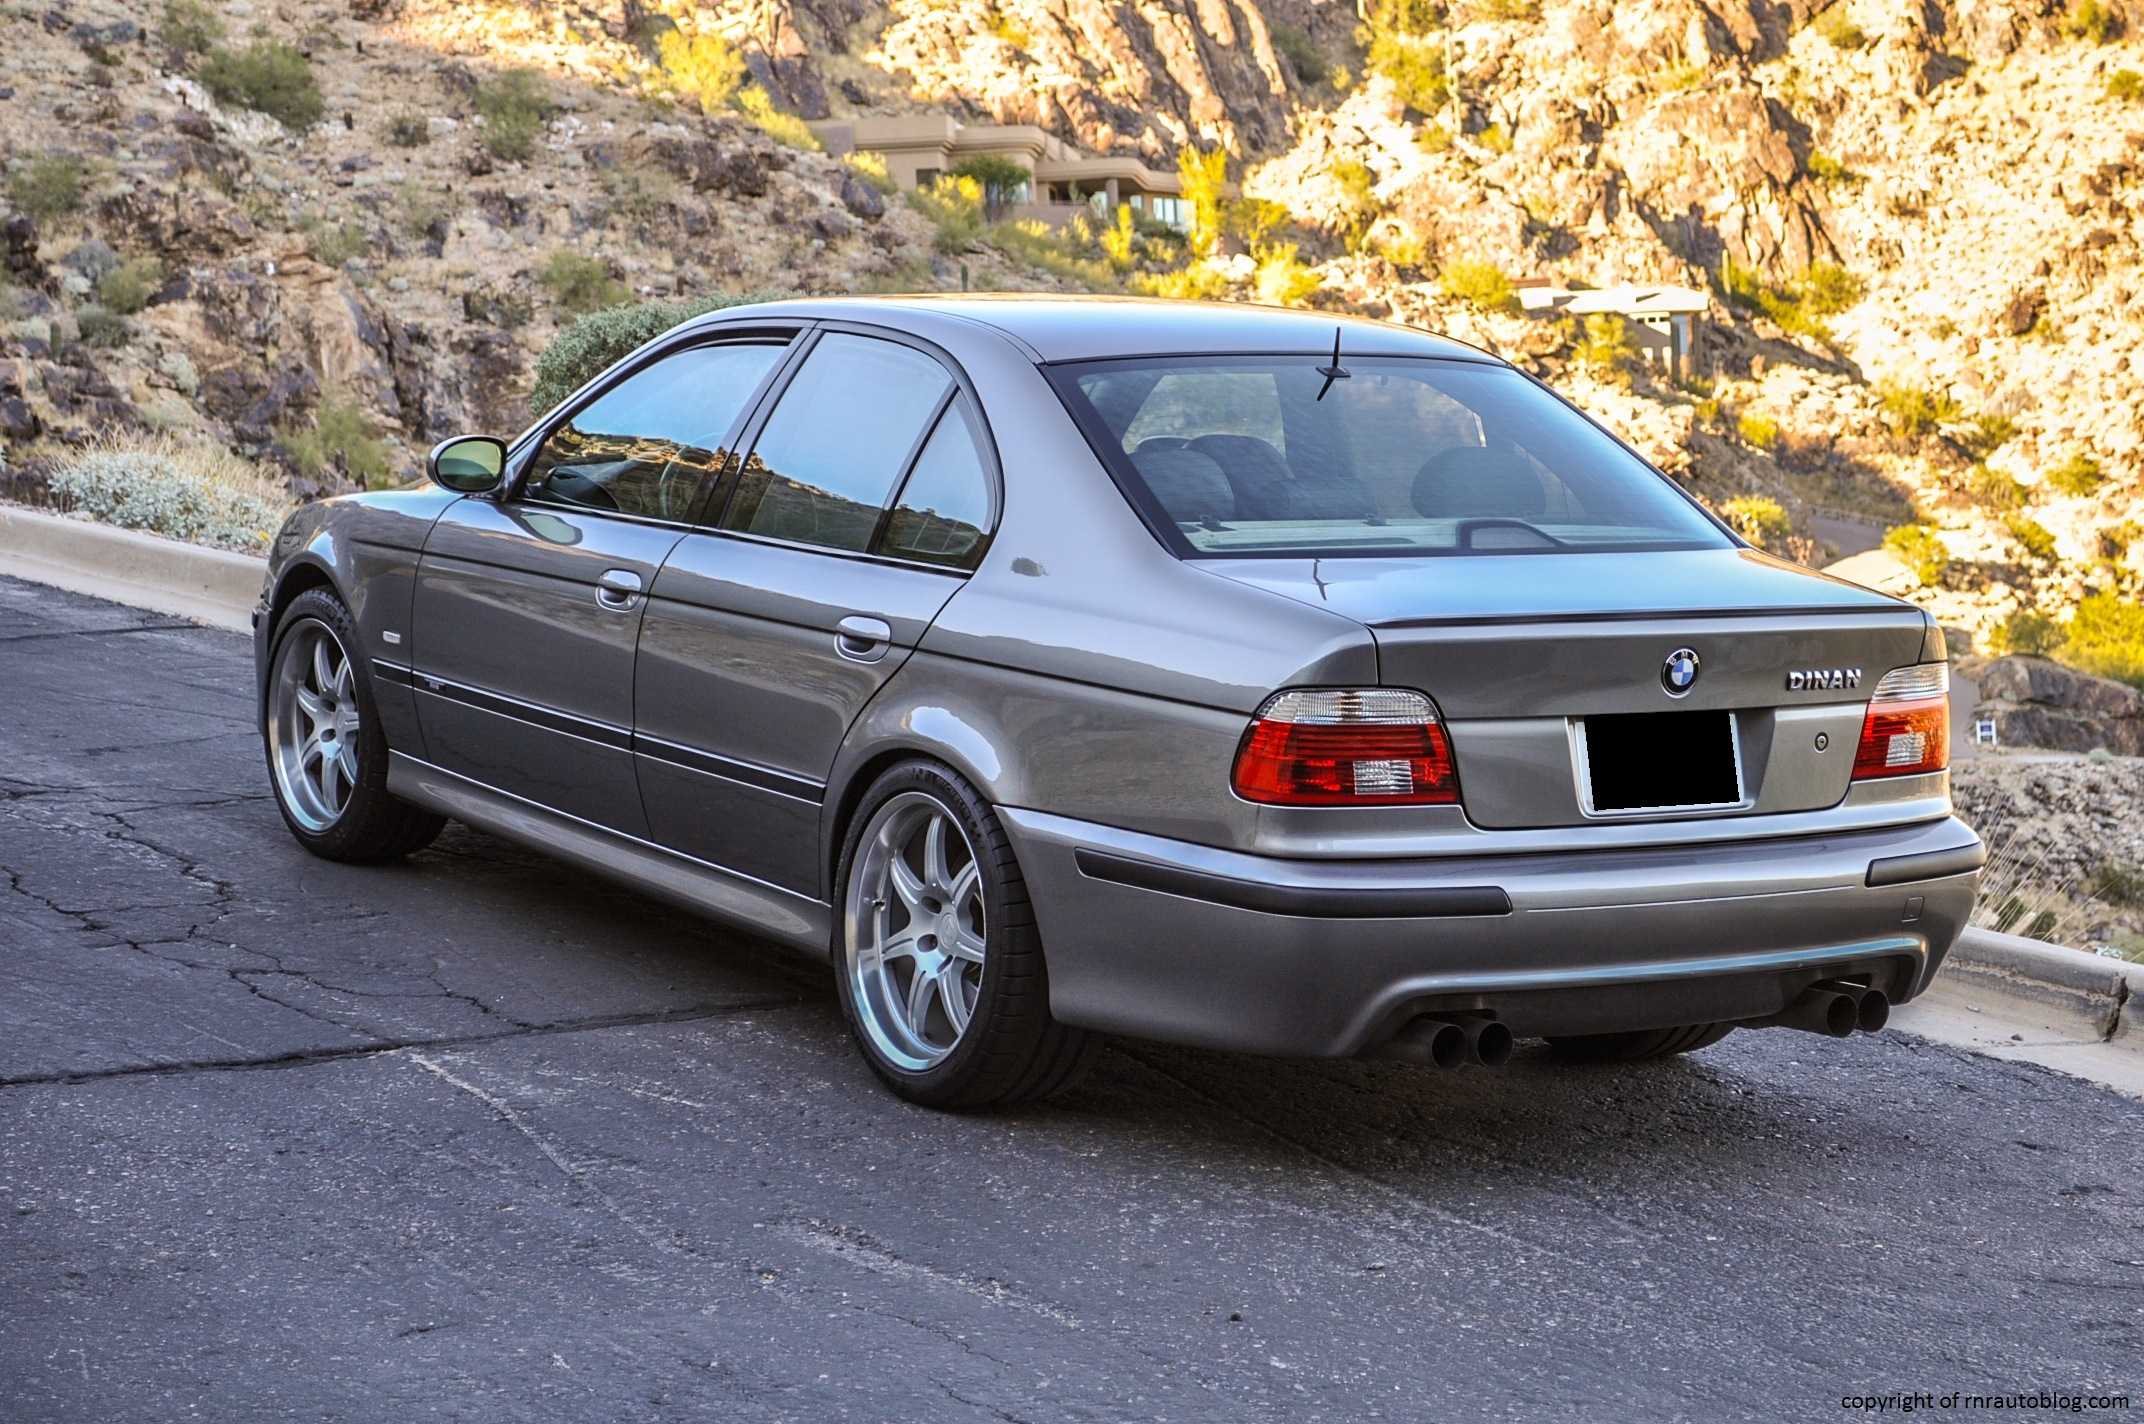 E39 9603 For Sale 18 DINAN Lightweight Forged Wheels  BMW M5